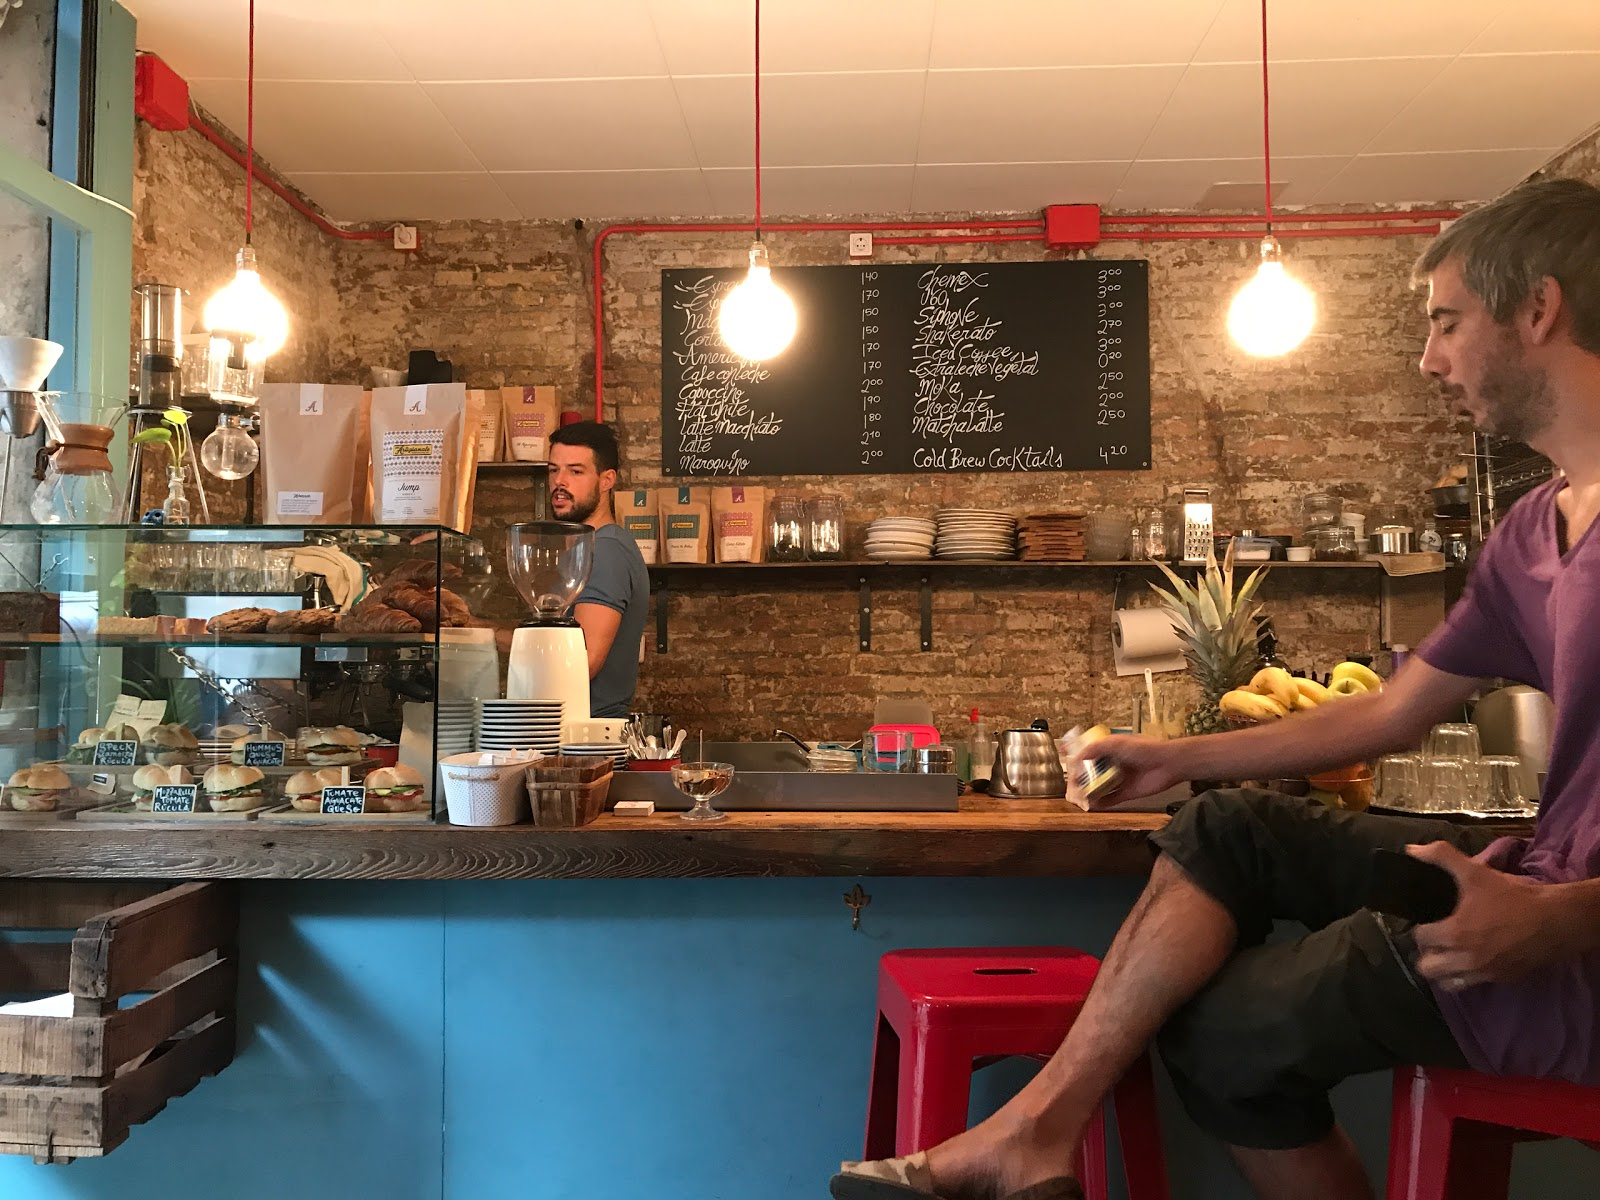 Roast Club Cafe: A Work-Friendly Place in Barcelona